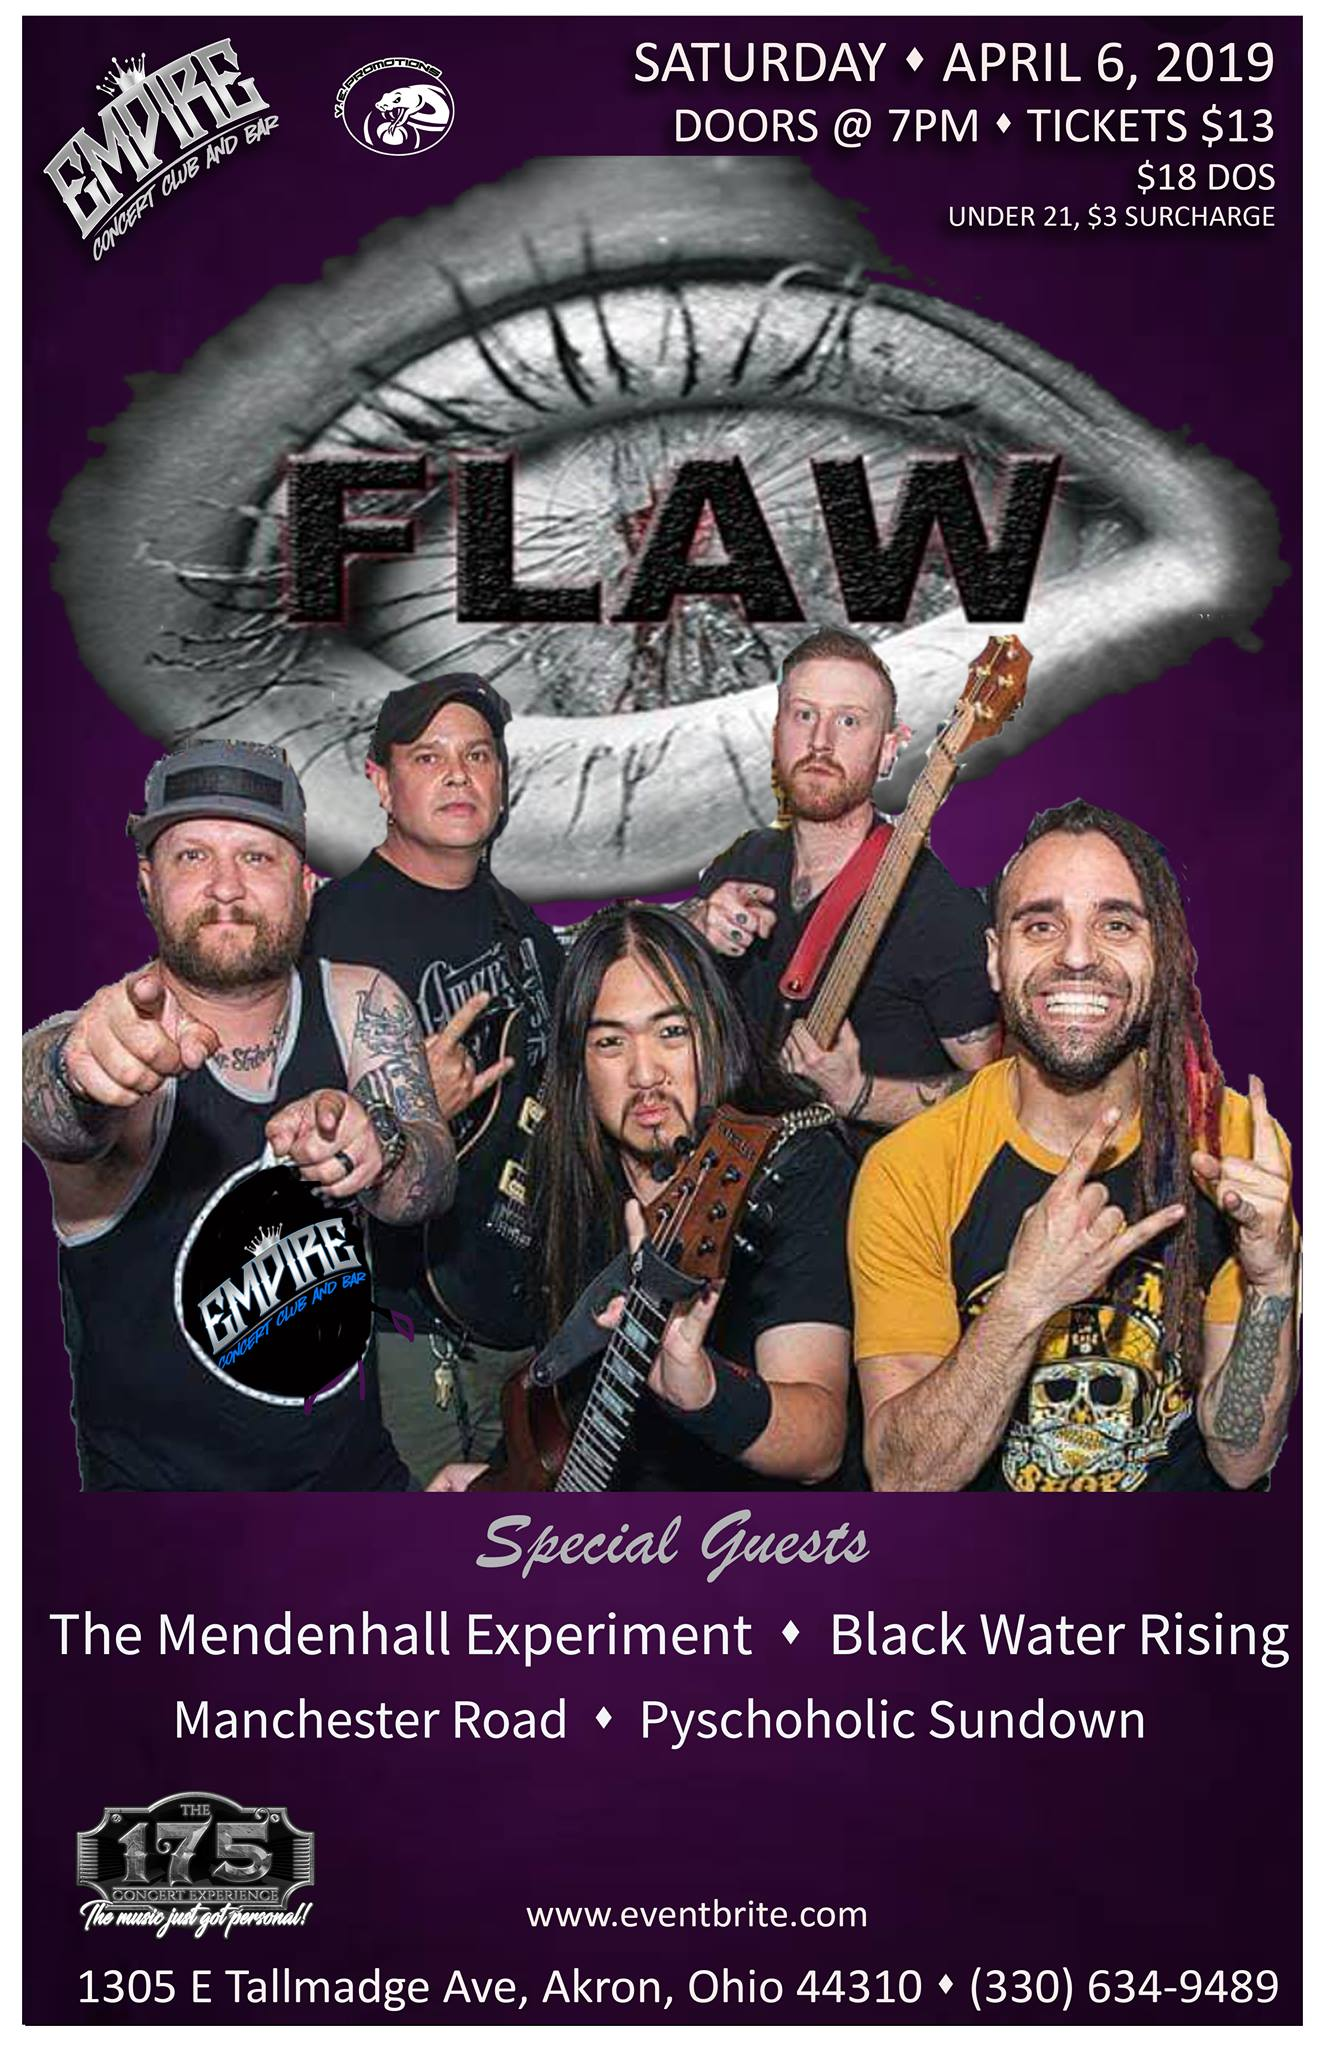 FLAW - A 175 Concert Experience!